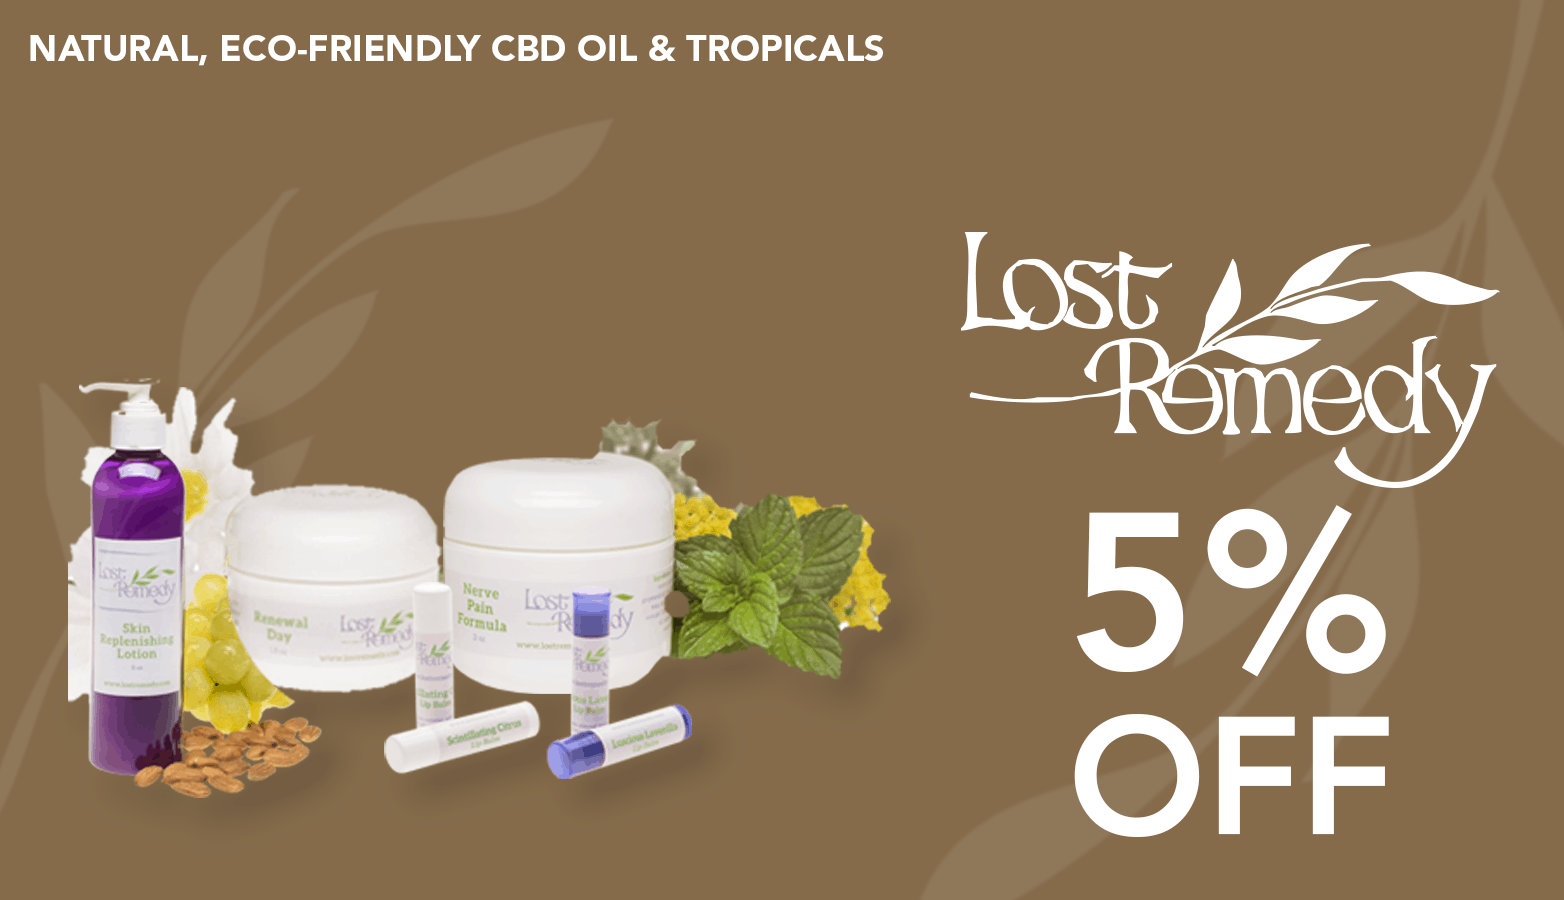 Lost Remedy Coupon Code discounts promos save on cannabis online Website redeisgn